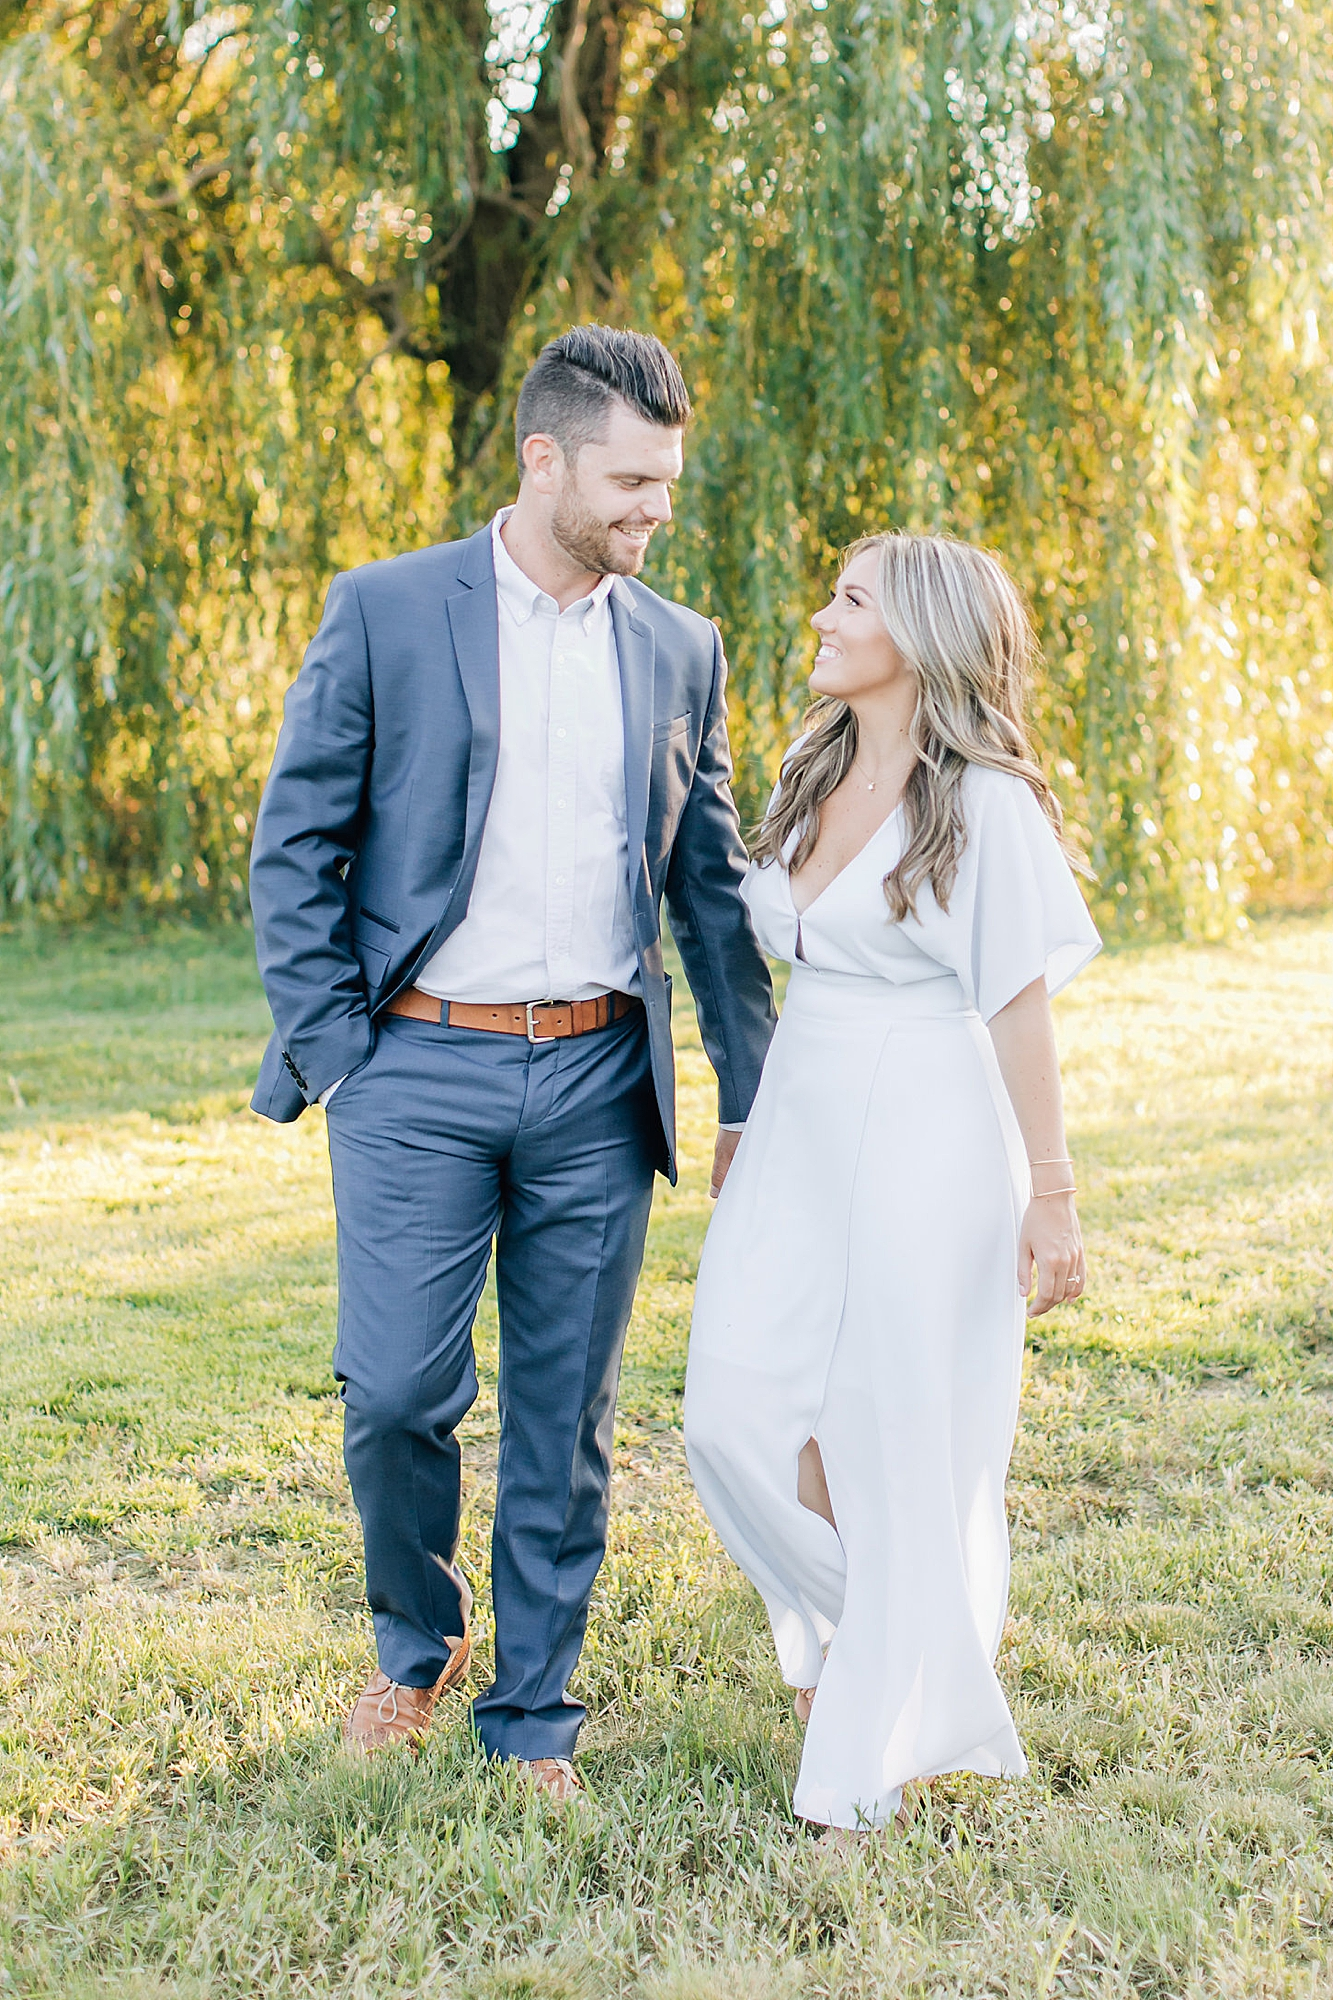 Engagement Session Outfit Inspiration by Magdalena Studios 0025